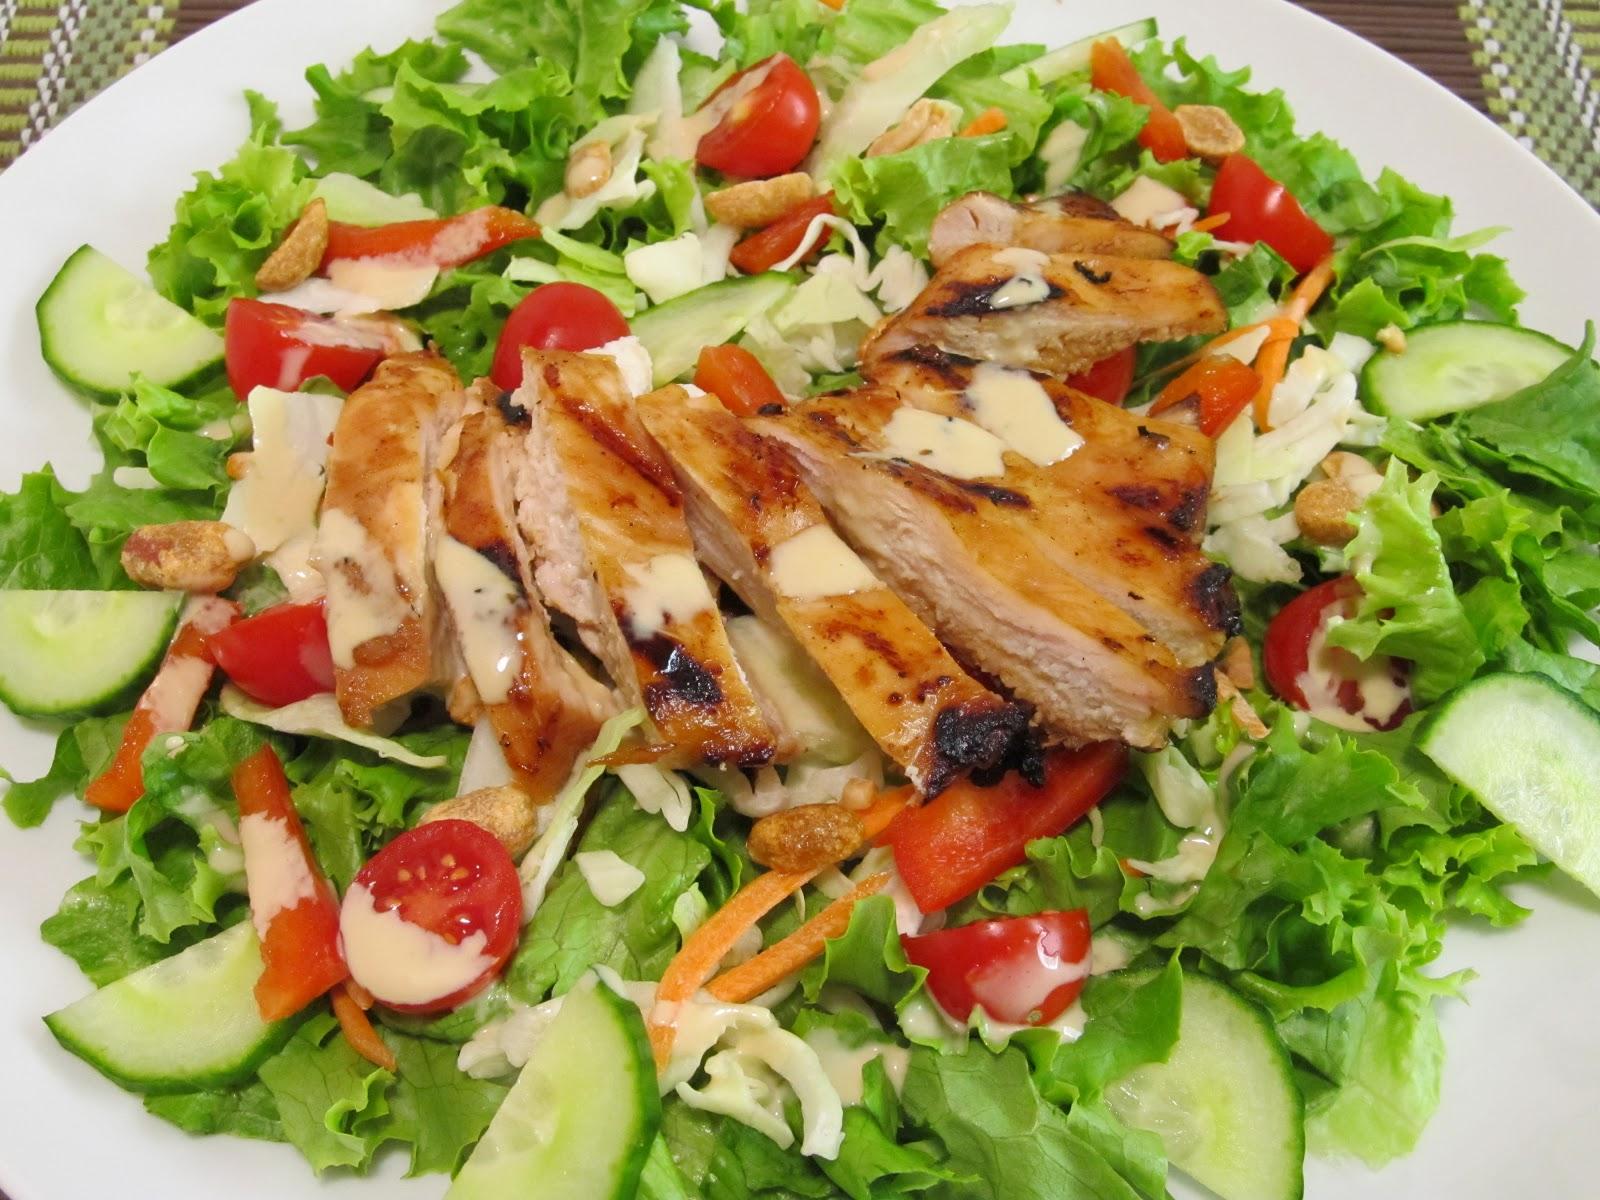 Jenn's Food Journey: Grilled Teriyaki Chicken Salad with ...